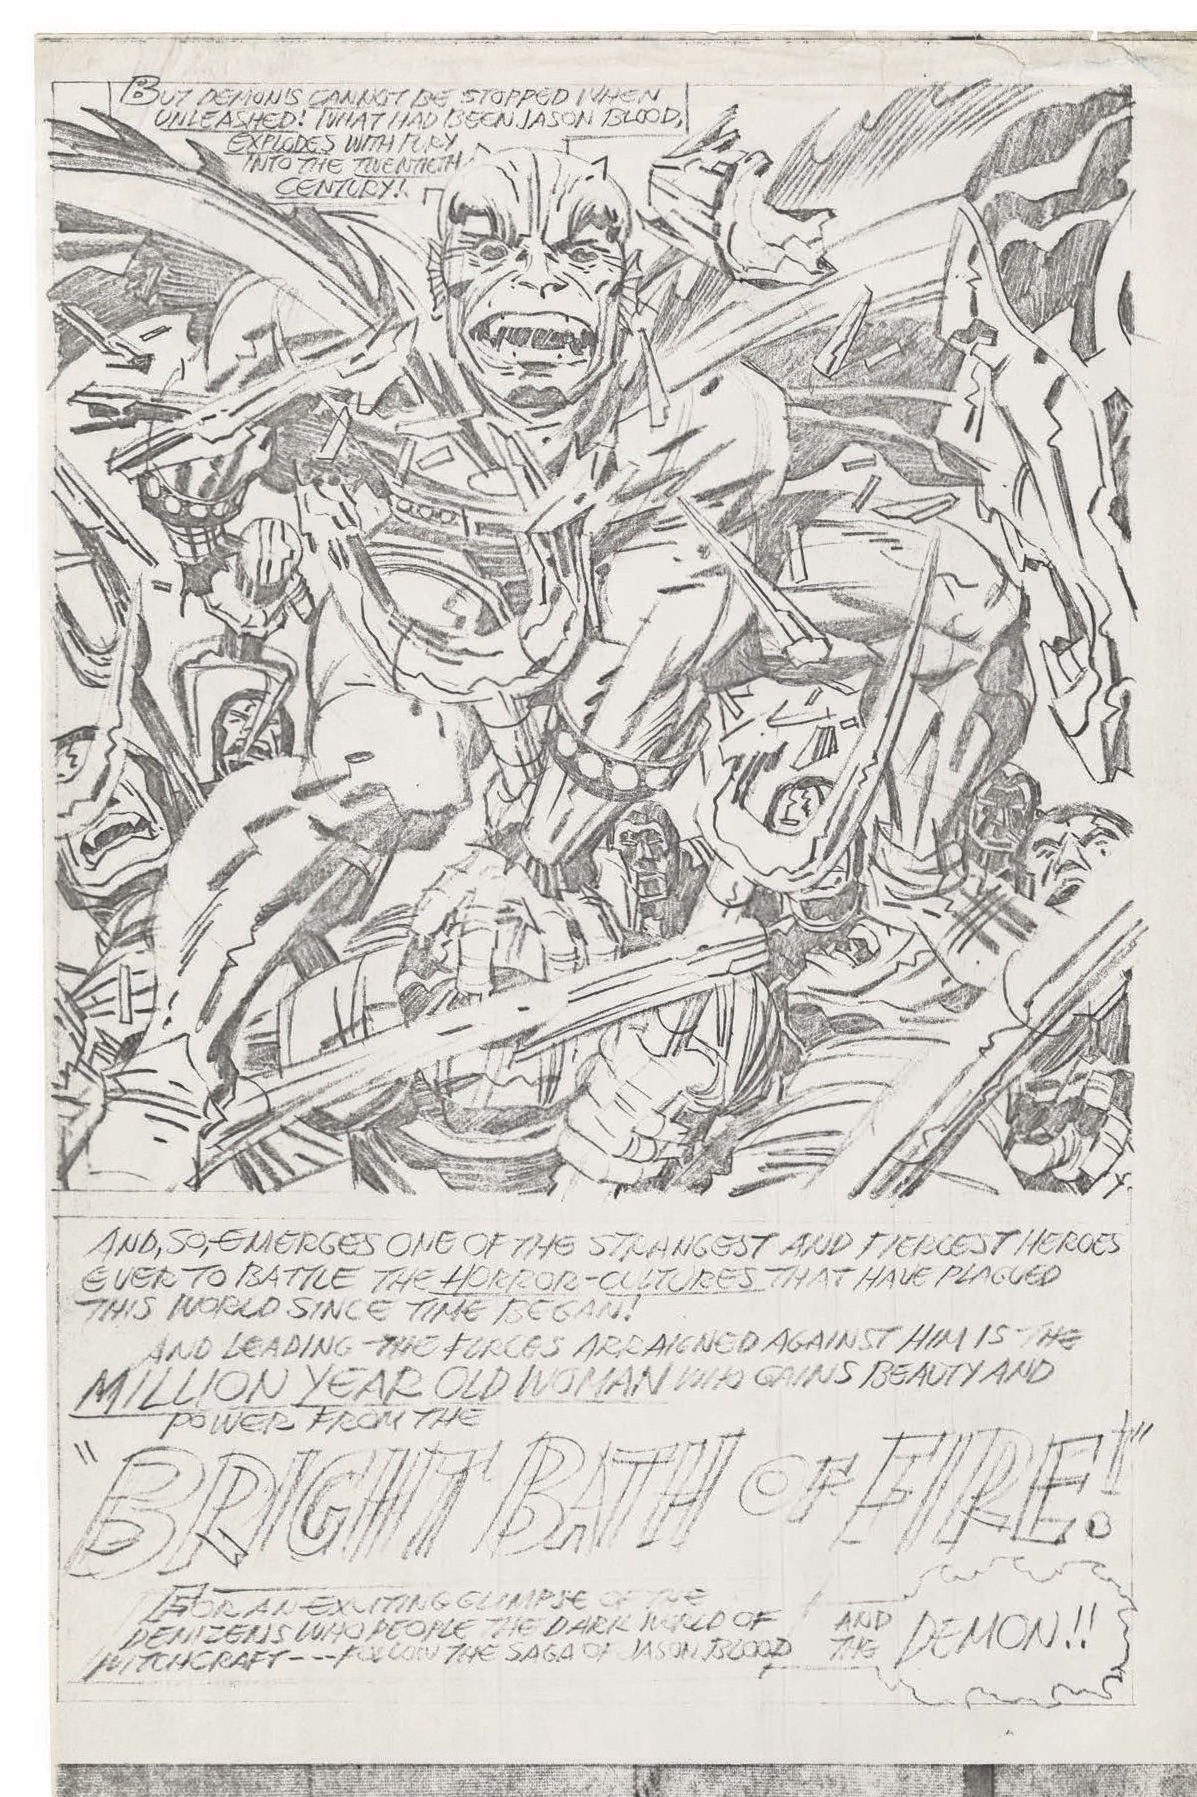 jackkirby_pencils_inks-lodemon4